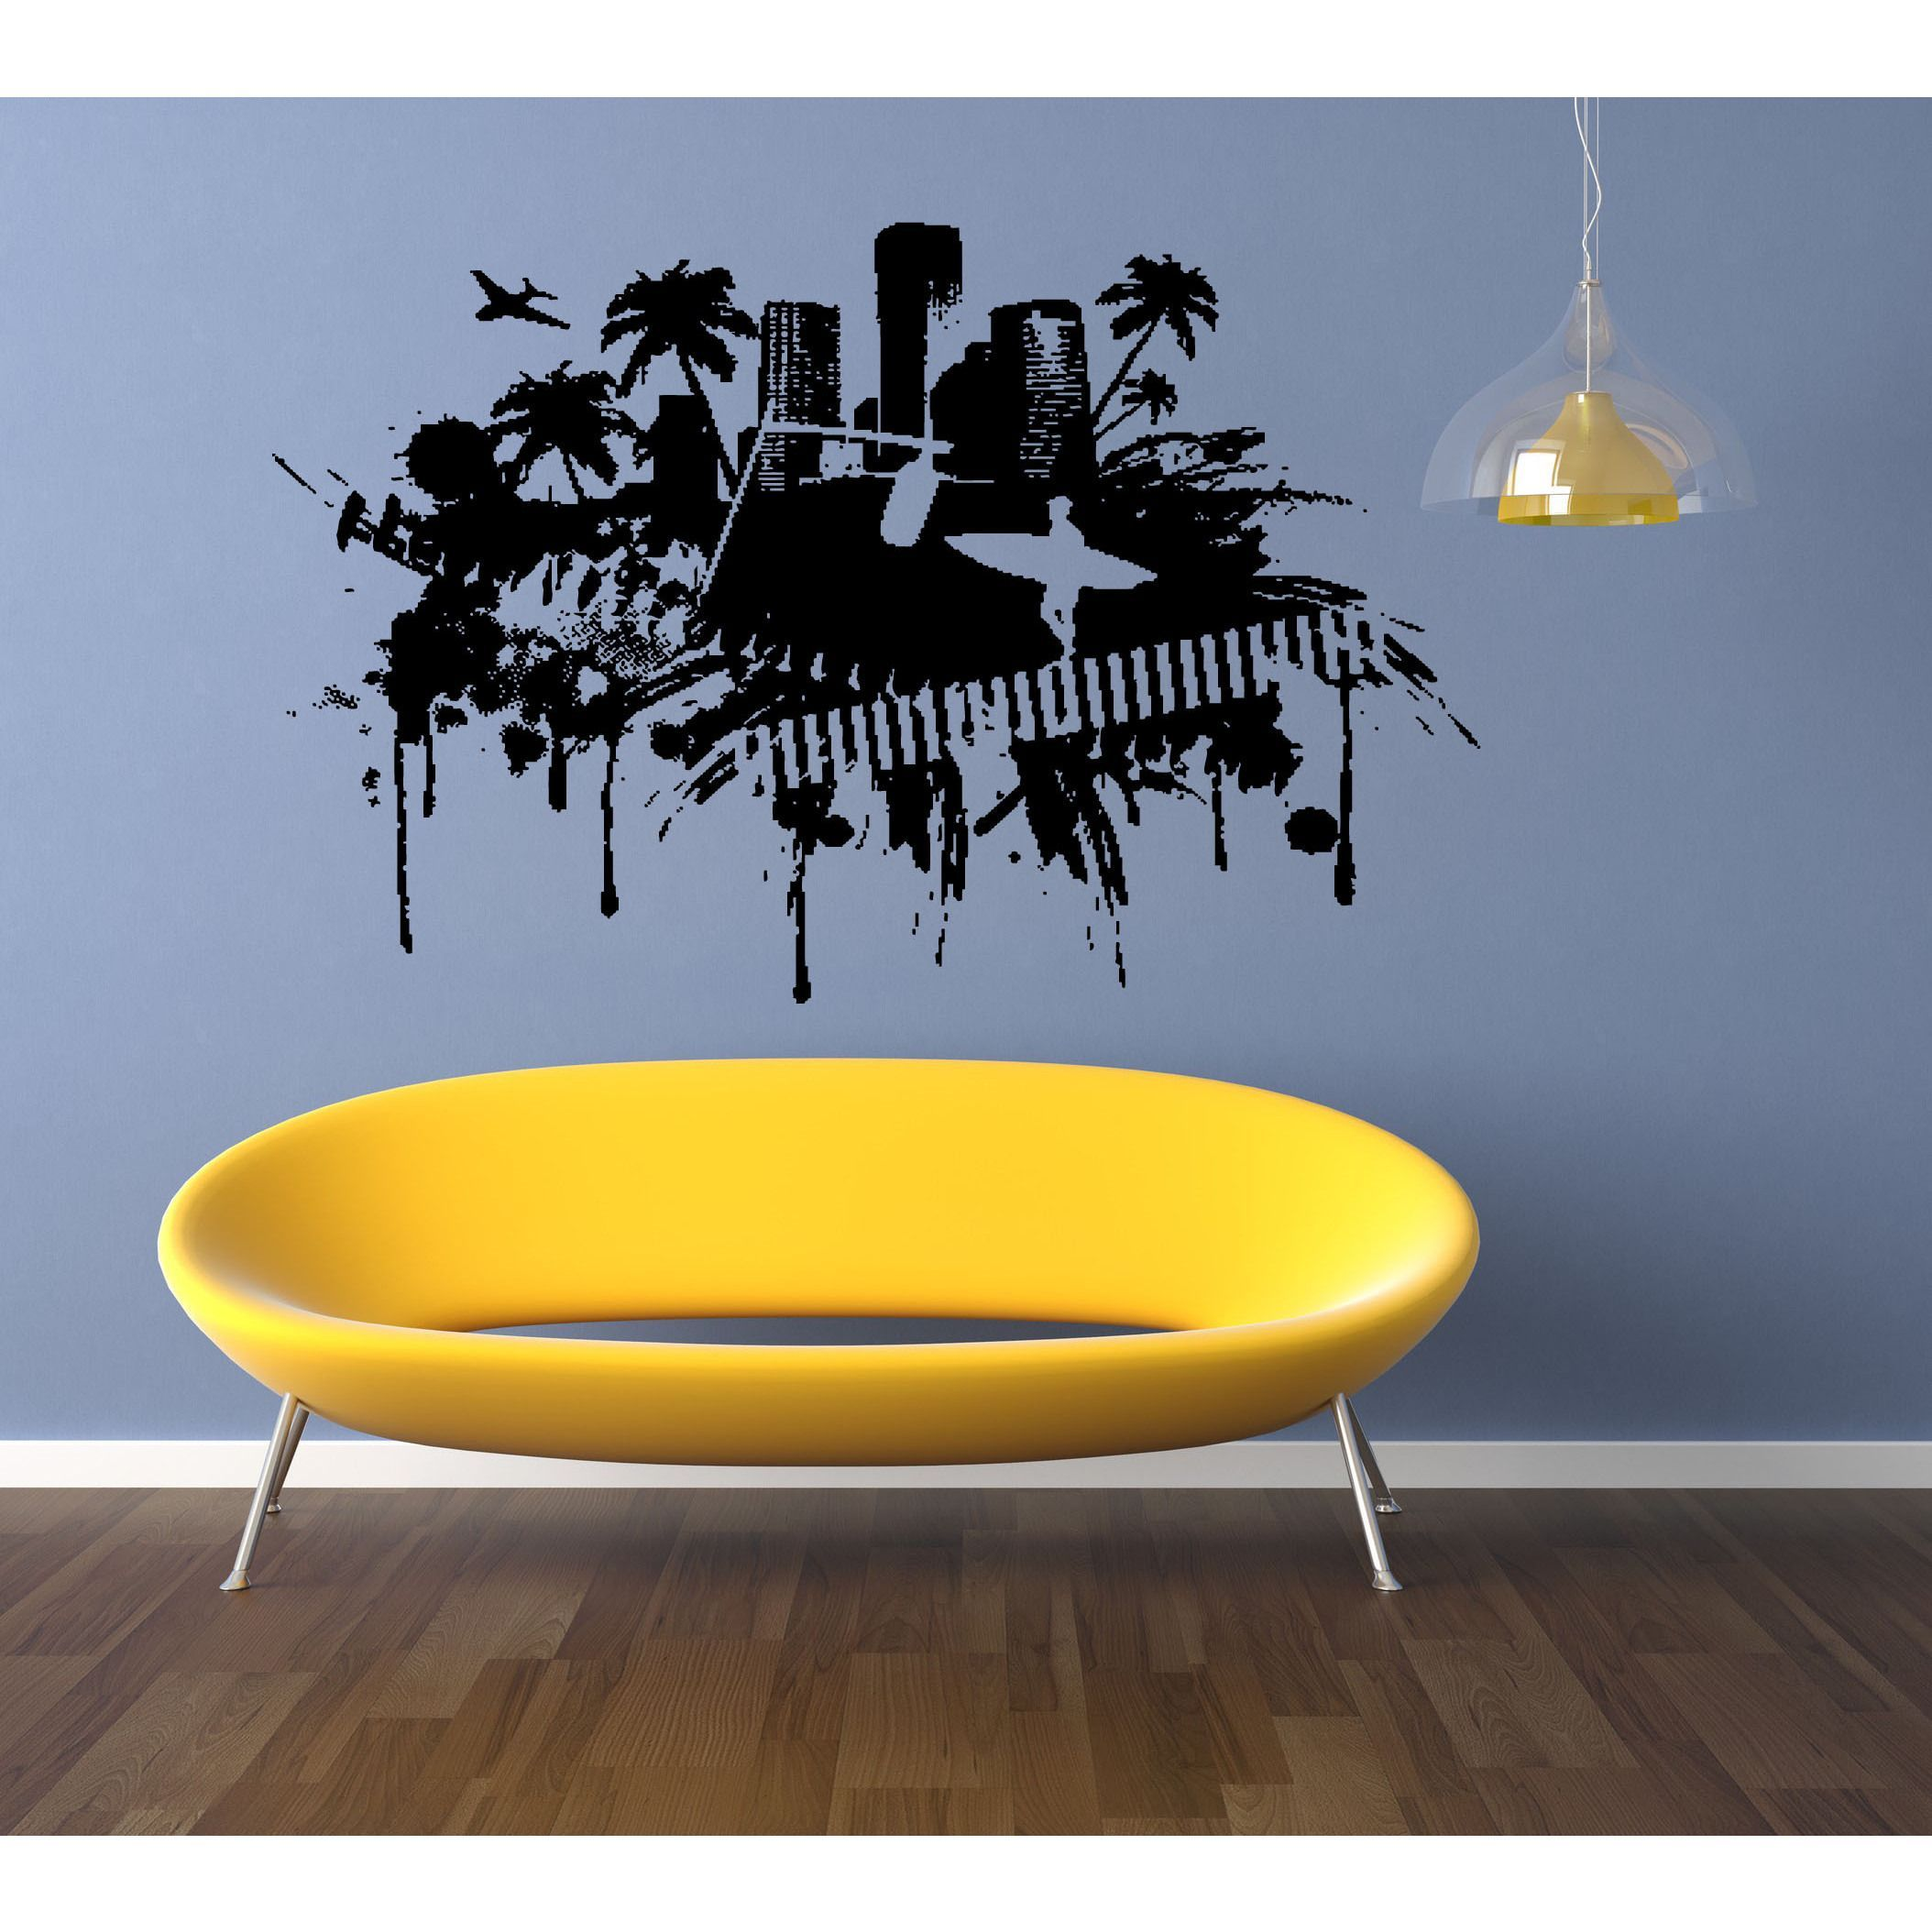 Famous Surfing Wall Art Composition - All About Wallart - adelgazare ...